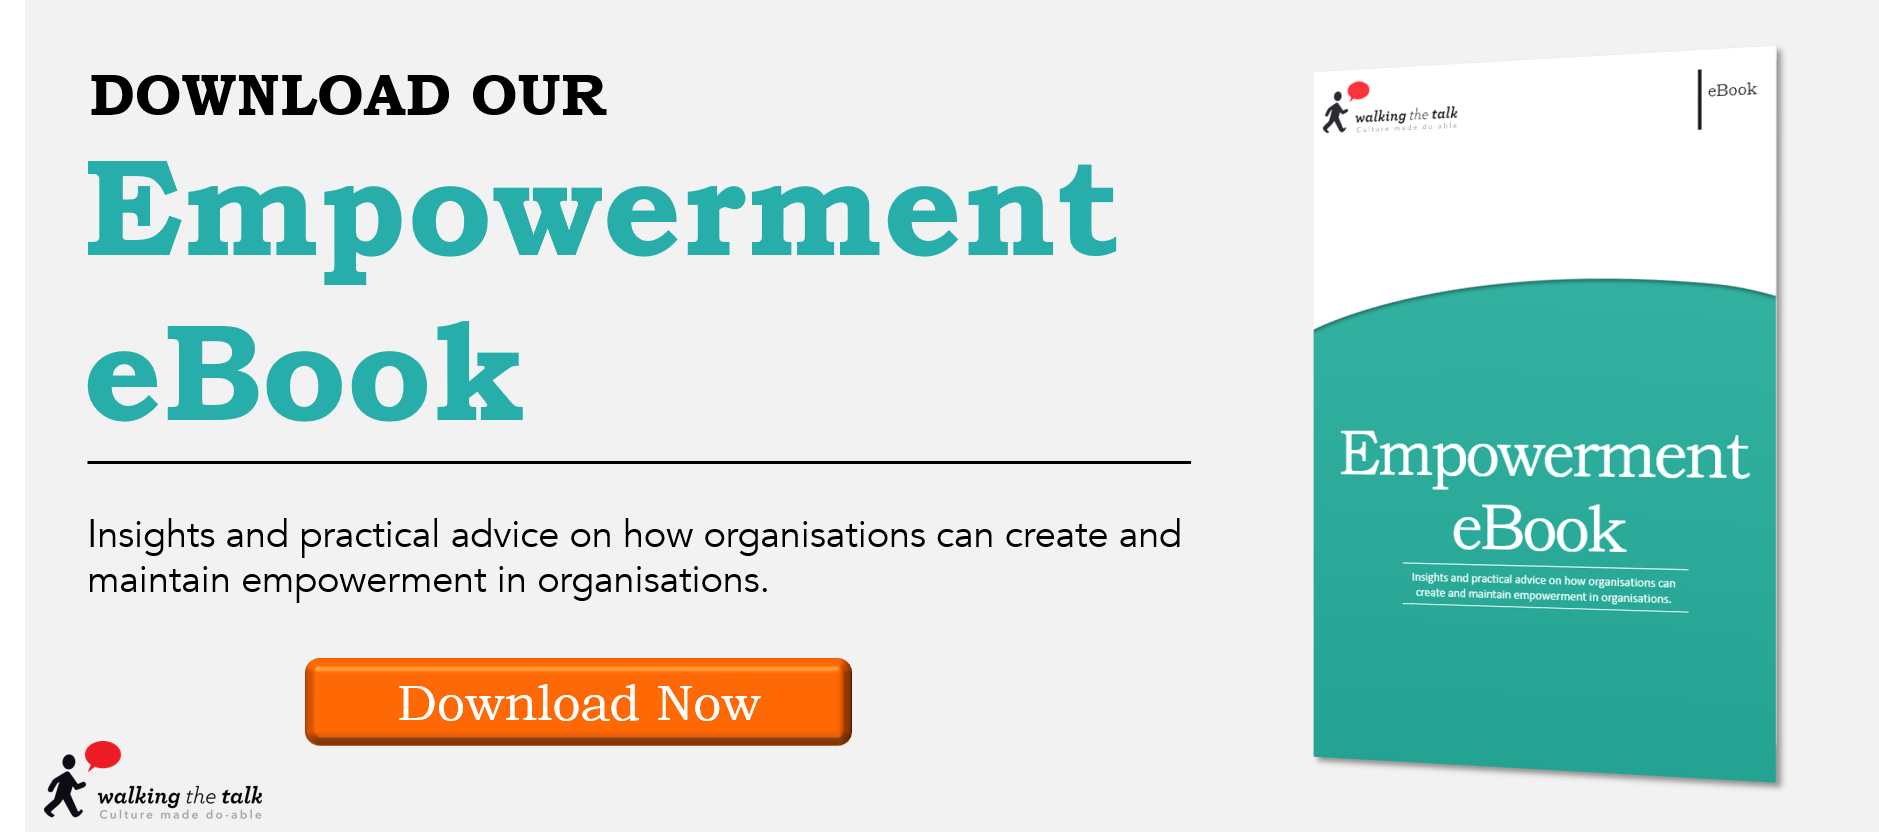 Practical advice on how organisations can create and maintain empowerment in organisations